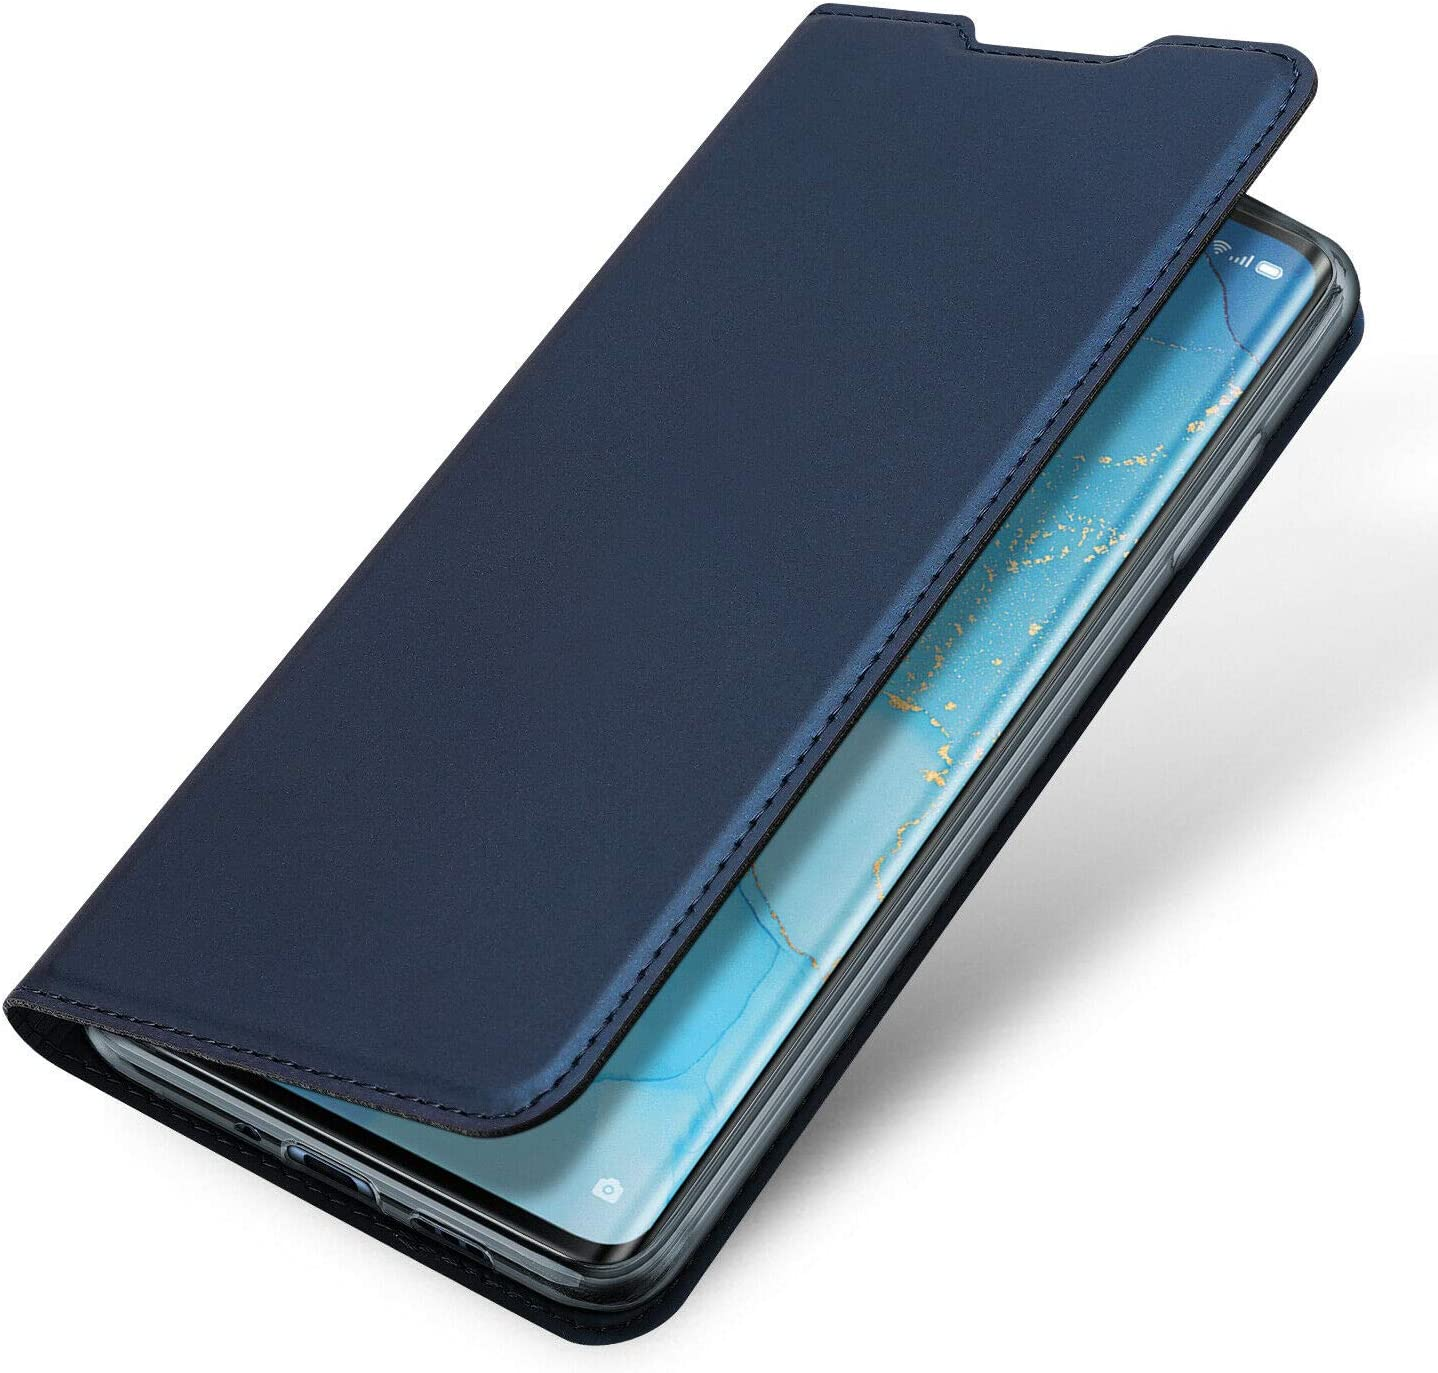 Dux Ducis Ultra Slim PU Leather Flip Folio Case with Magnetic Closure Case for Oppo Find X2 Blue